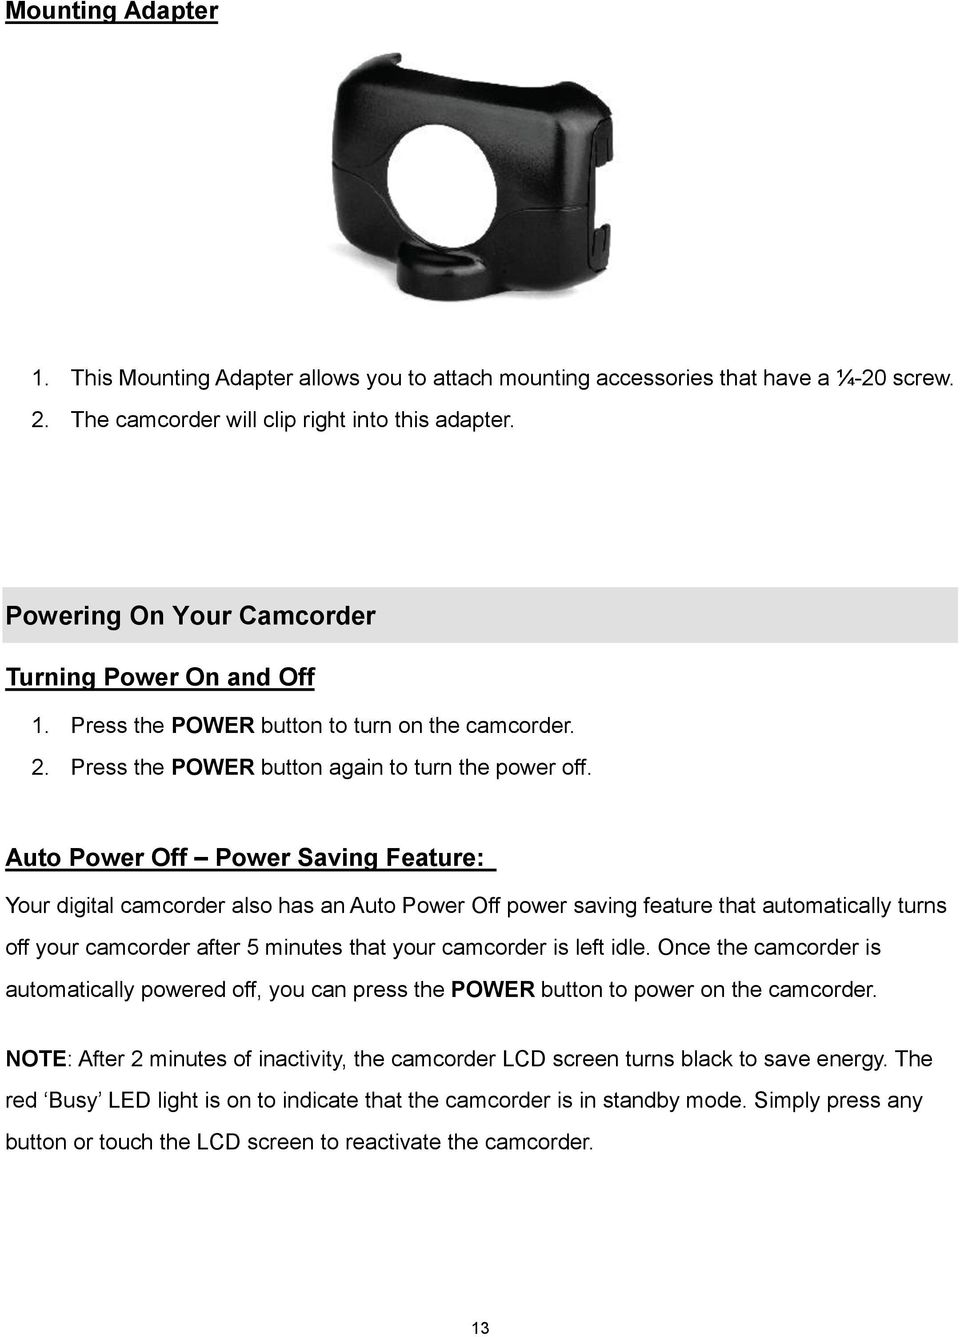 Auto Power Off Power Saving Feature: Your digital camcorder also has an Auto Power Off power saving feature that automatically turns off your camcorder after 5 minutes that your camcorder is left